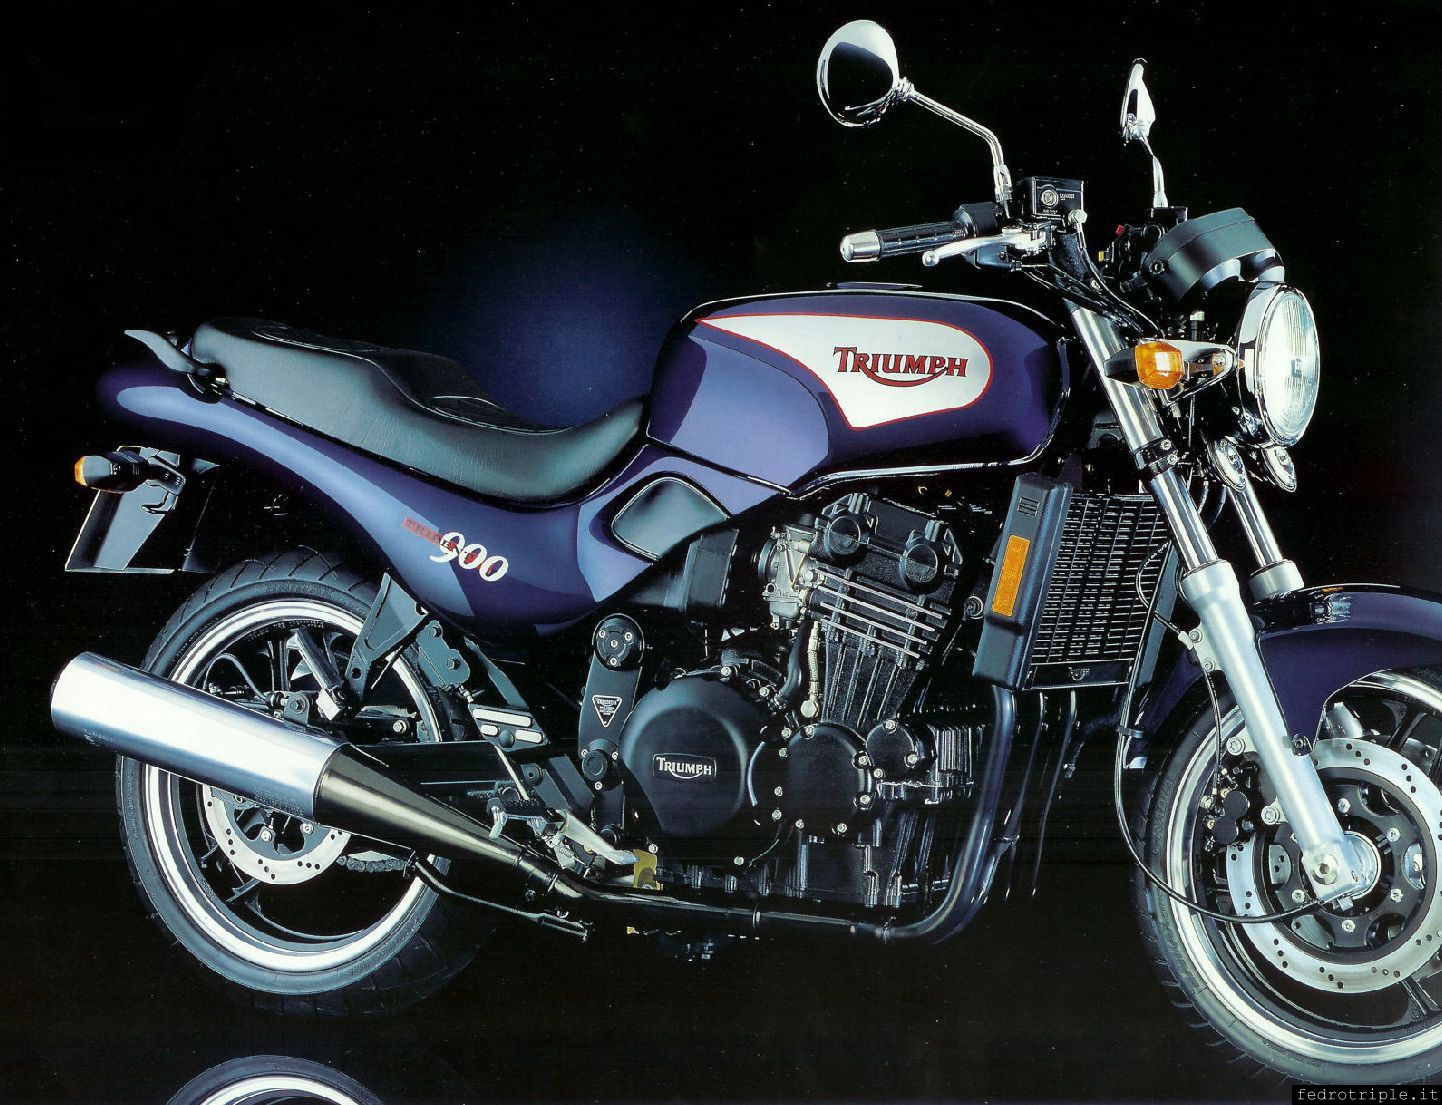 Triumph t300 Service manual. For the T 300 models, Trident, Trophy, Sprint,  Speed Triple, Daytona, Tiger, Thunderbird/Sport, Legend & Adventurer